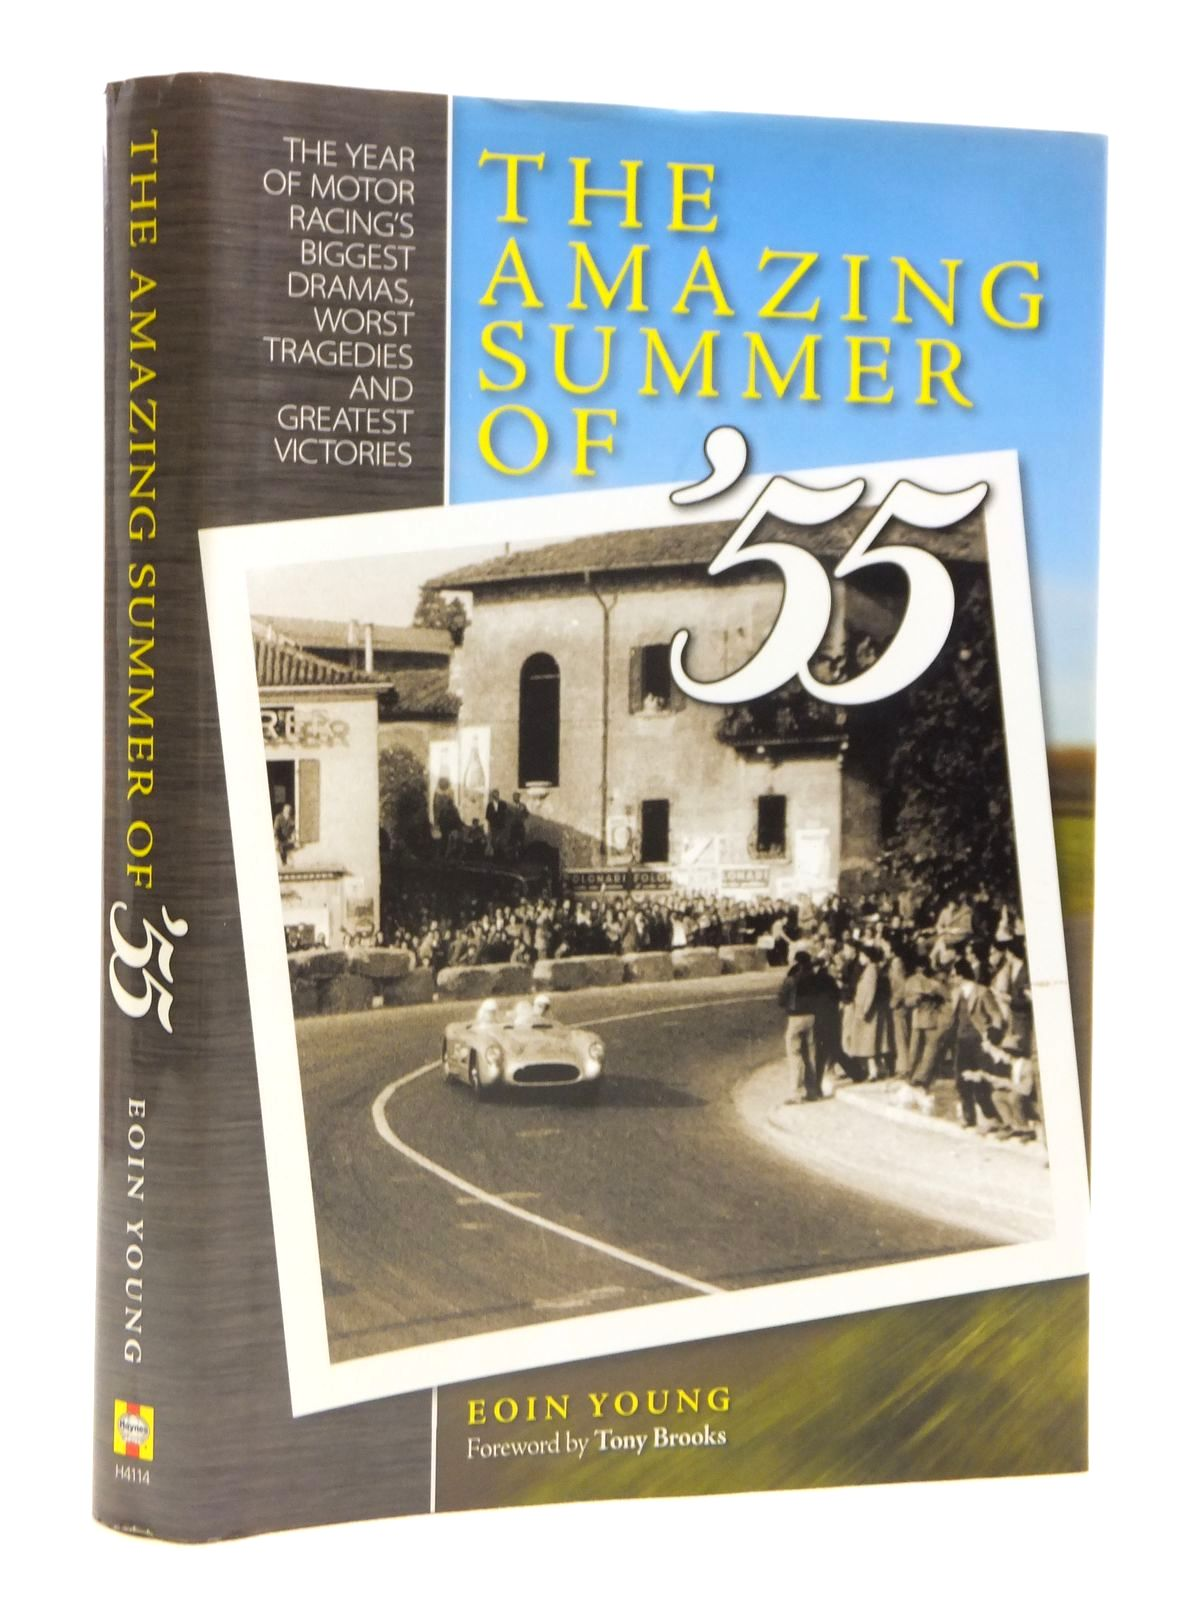 Photo of THE AMAZING SUMMER OF '55: THE YEAR OF MOTOR RACING'S BIGGEST DRAMAS, WORST TRAGEDIES AND GREATEST VICTORIES written by Young, Eoin published by Haynes Publishing Group (STOCK CODE: 1608133)  for sale by Stella & Rose's Books